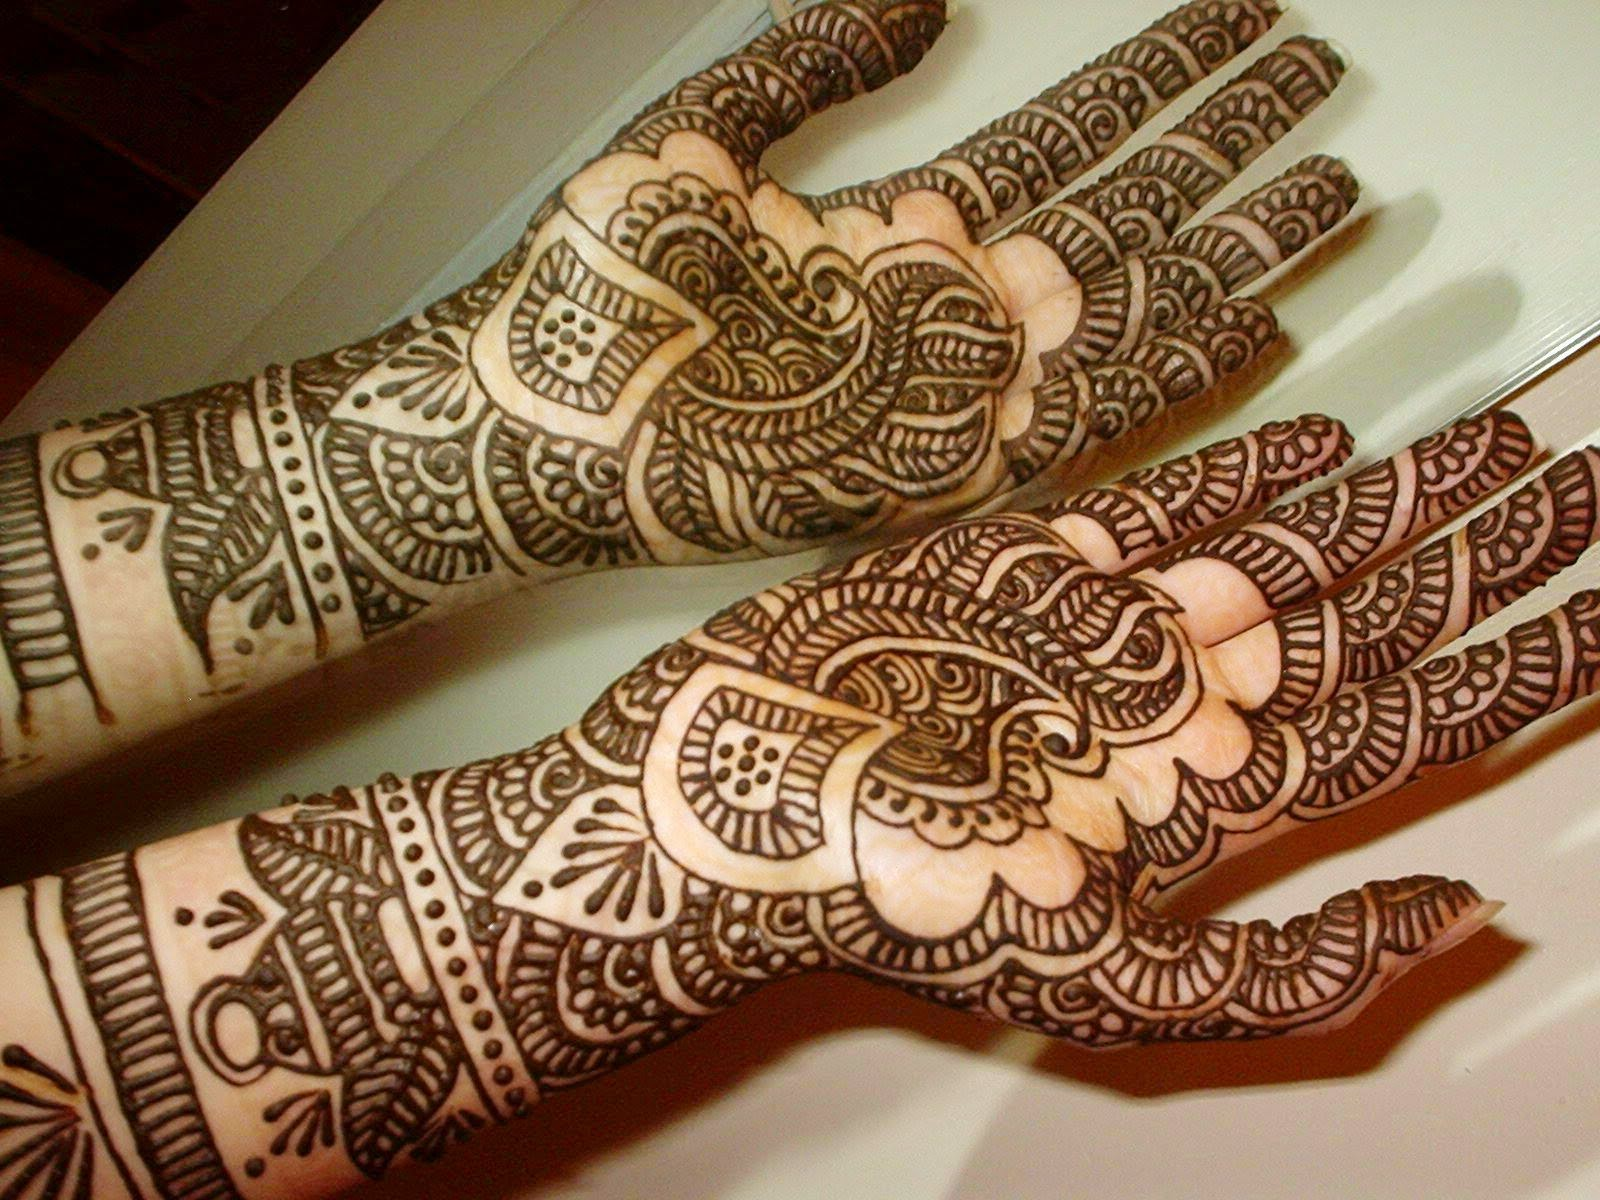 Mehndi Designs Hd Images : Mehndi design wallpapers pictures images